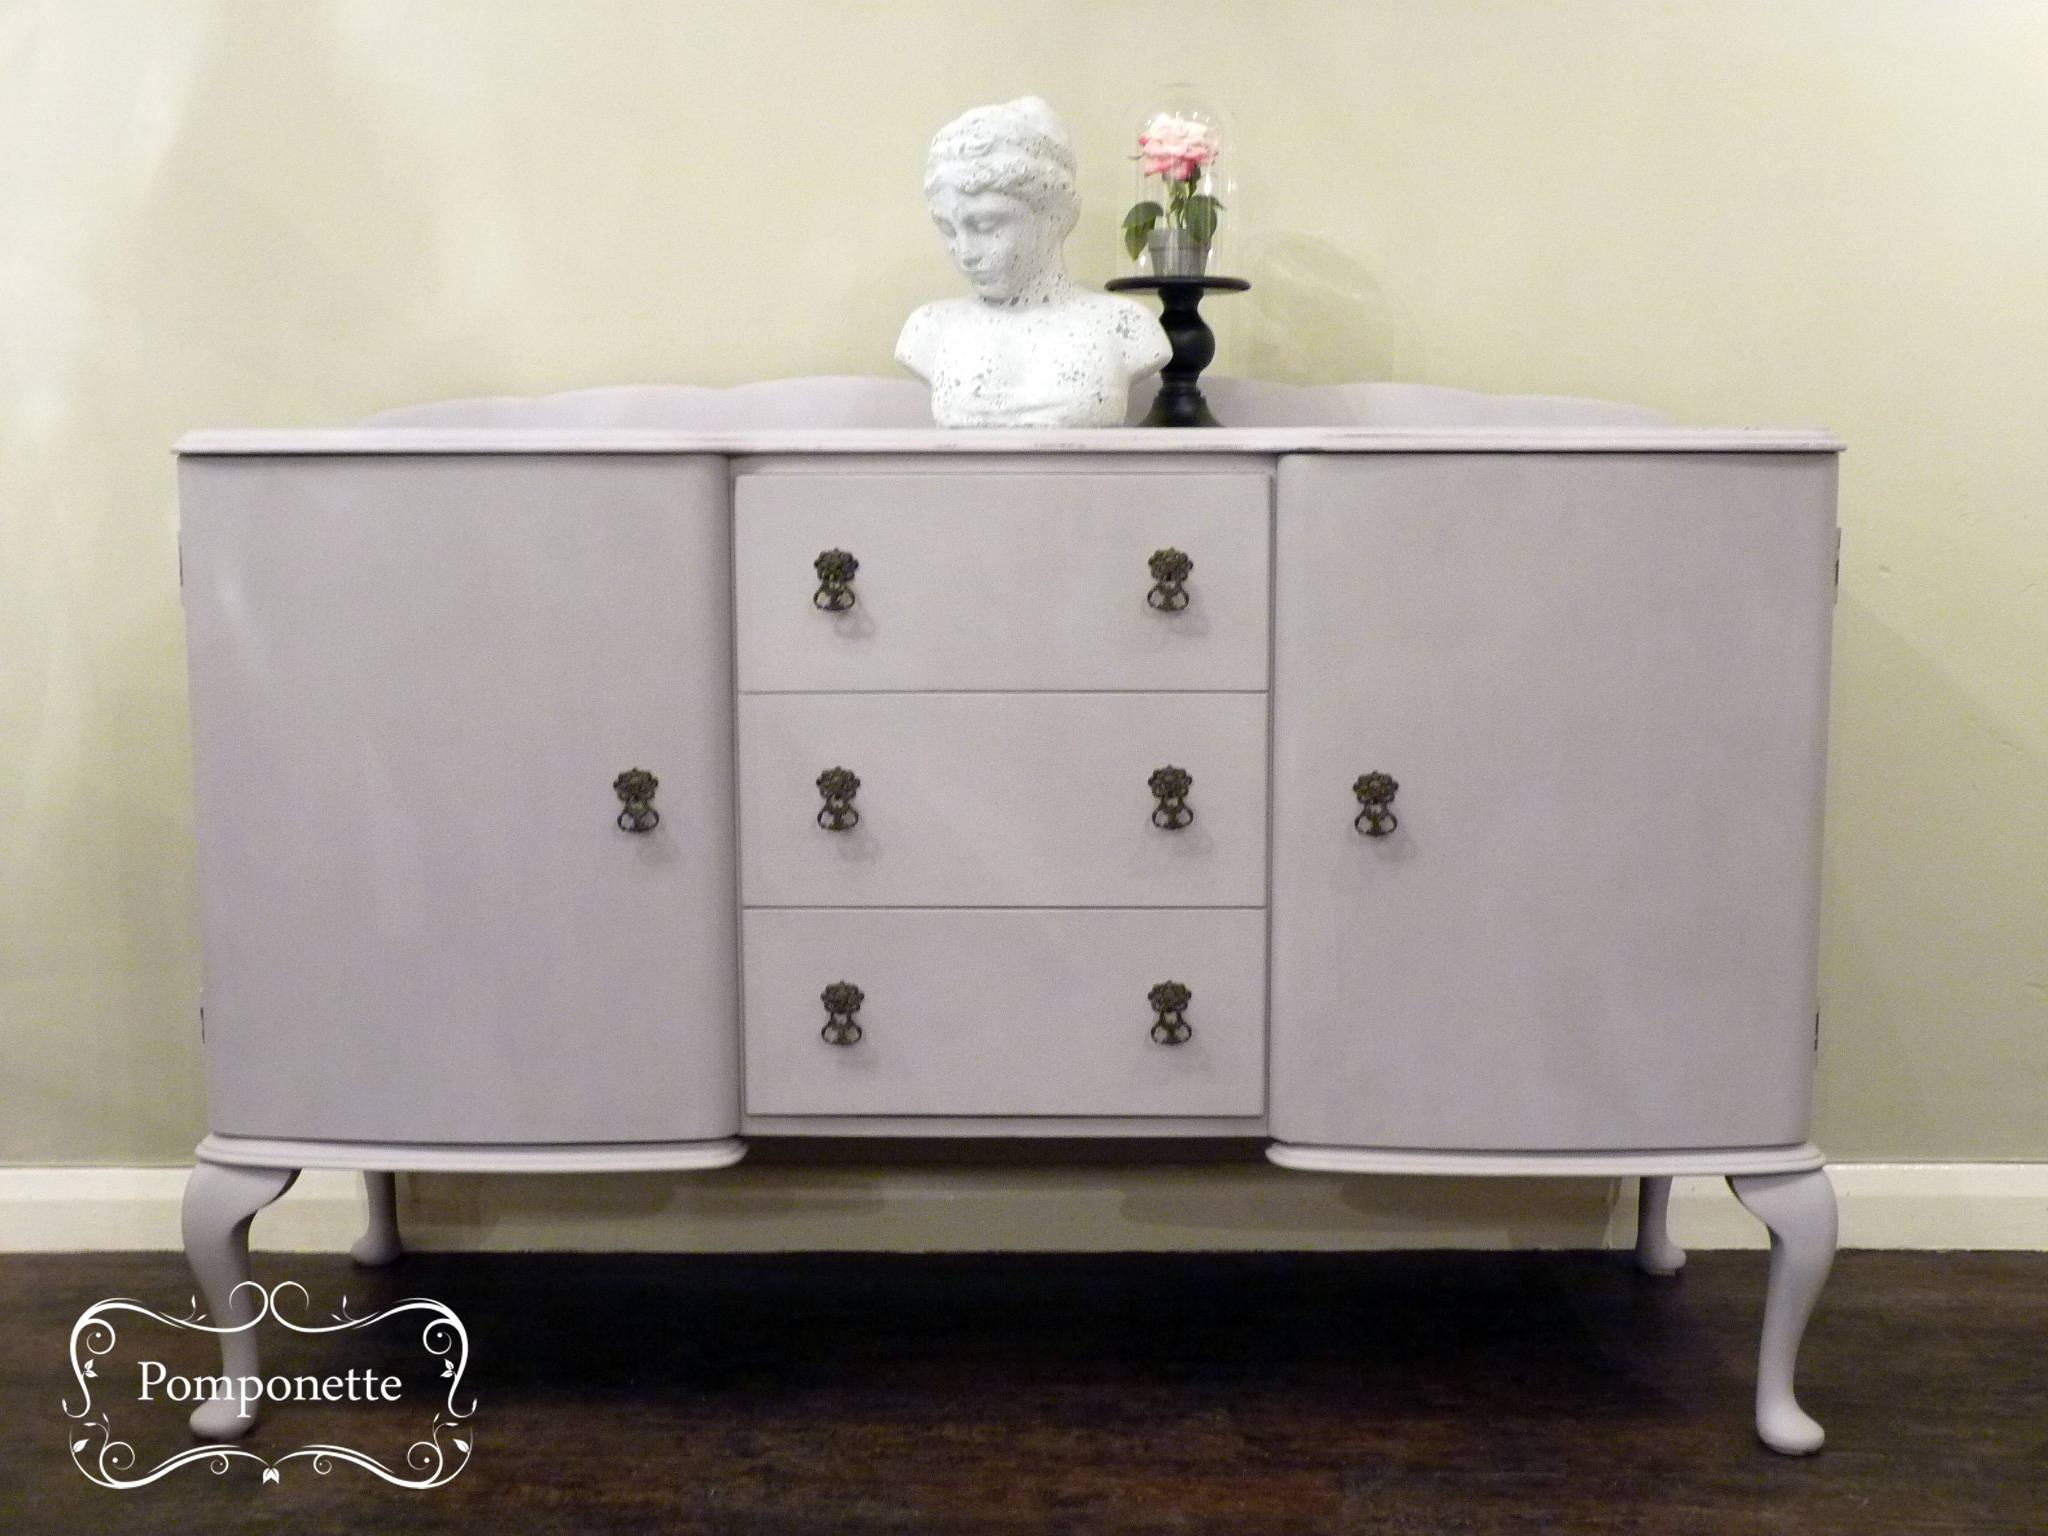 Sideboardpomponette|vintage Painted Furniture Within Annie Sloan Painted Sideboards (View 8 of 15)